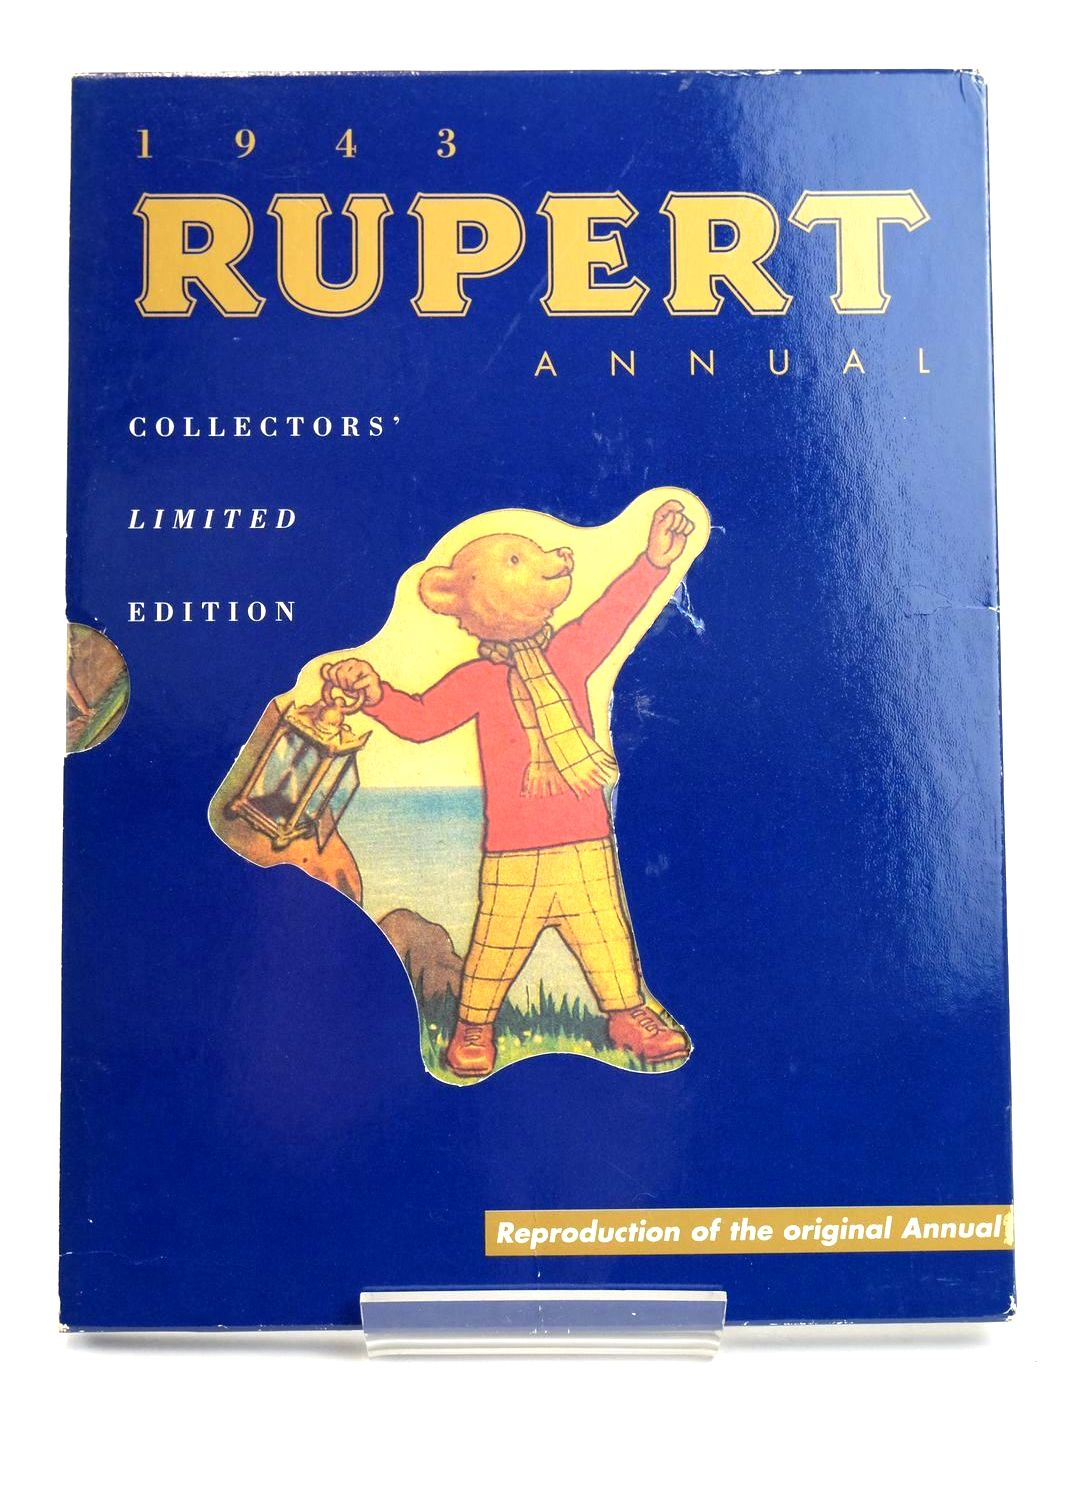 Photo of RUPERT ANNUAL 1943 (FACSIMILE) - MORE RUPERT ADVENTURES written by Bestall, Alfred illustrated by Bestall, Alfred published by Pedigree Books Limited (STOCK CODE: 1319412)  for sale by Stella & Rose's Books